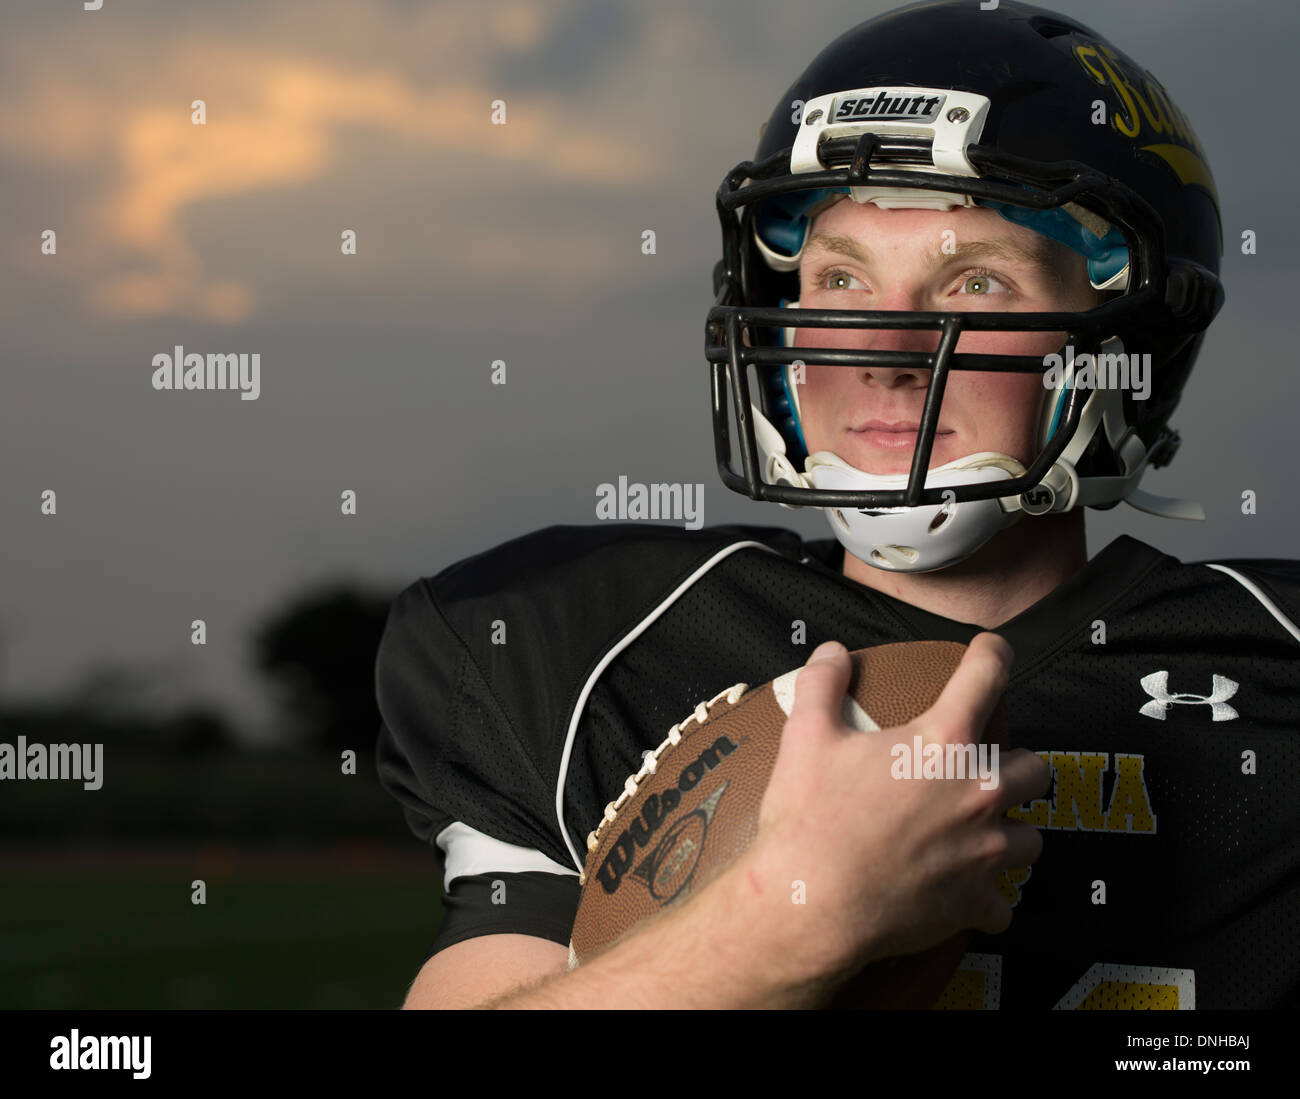 American High School Football Player in uniform with helmet and football. - Stock Image